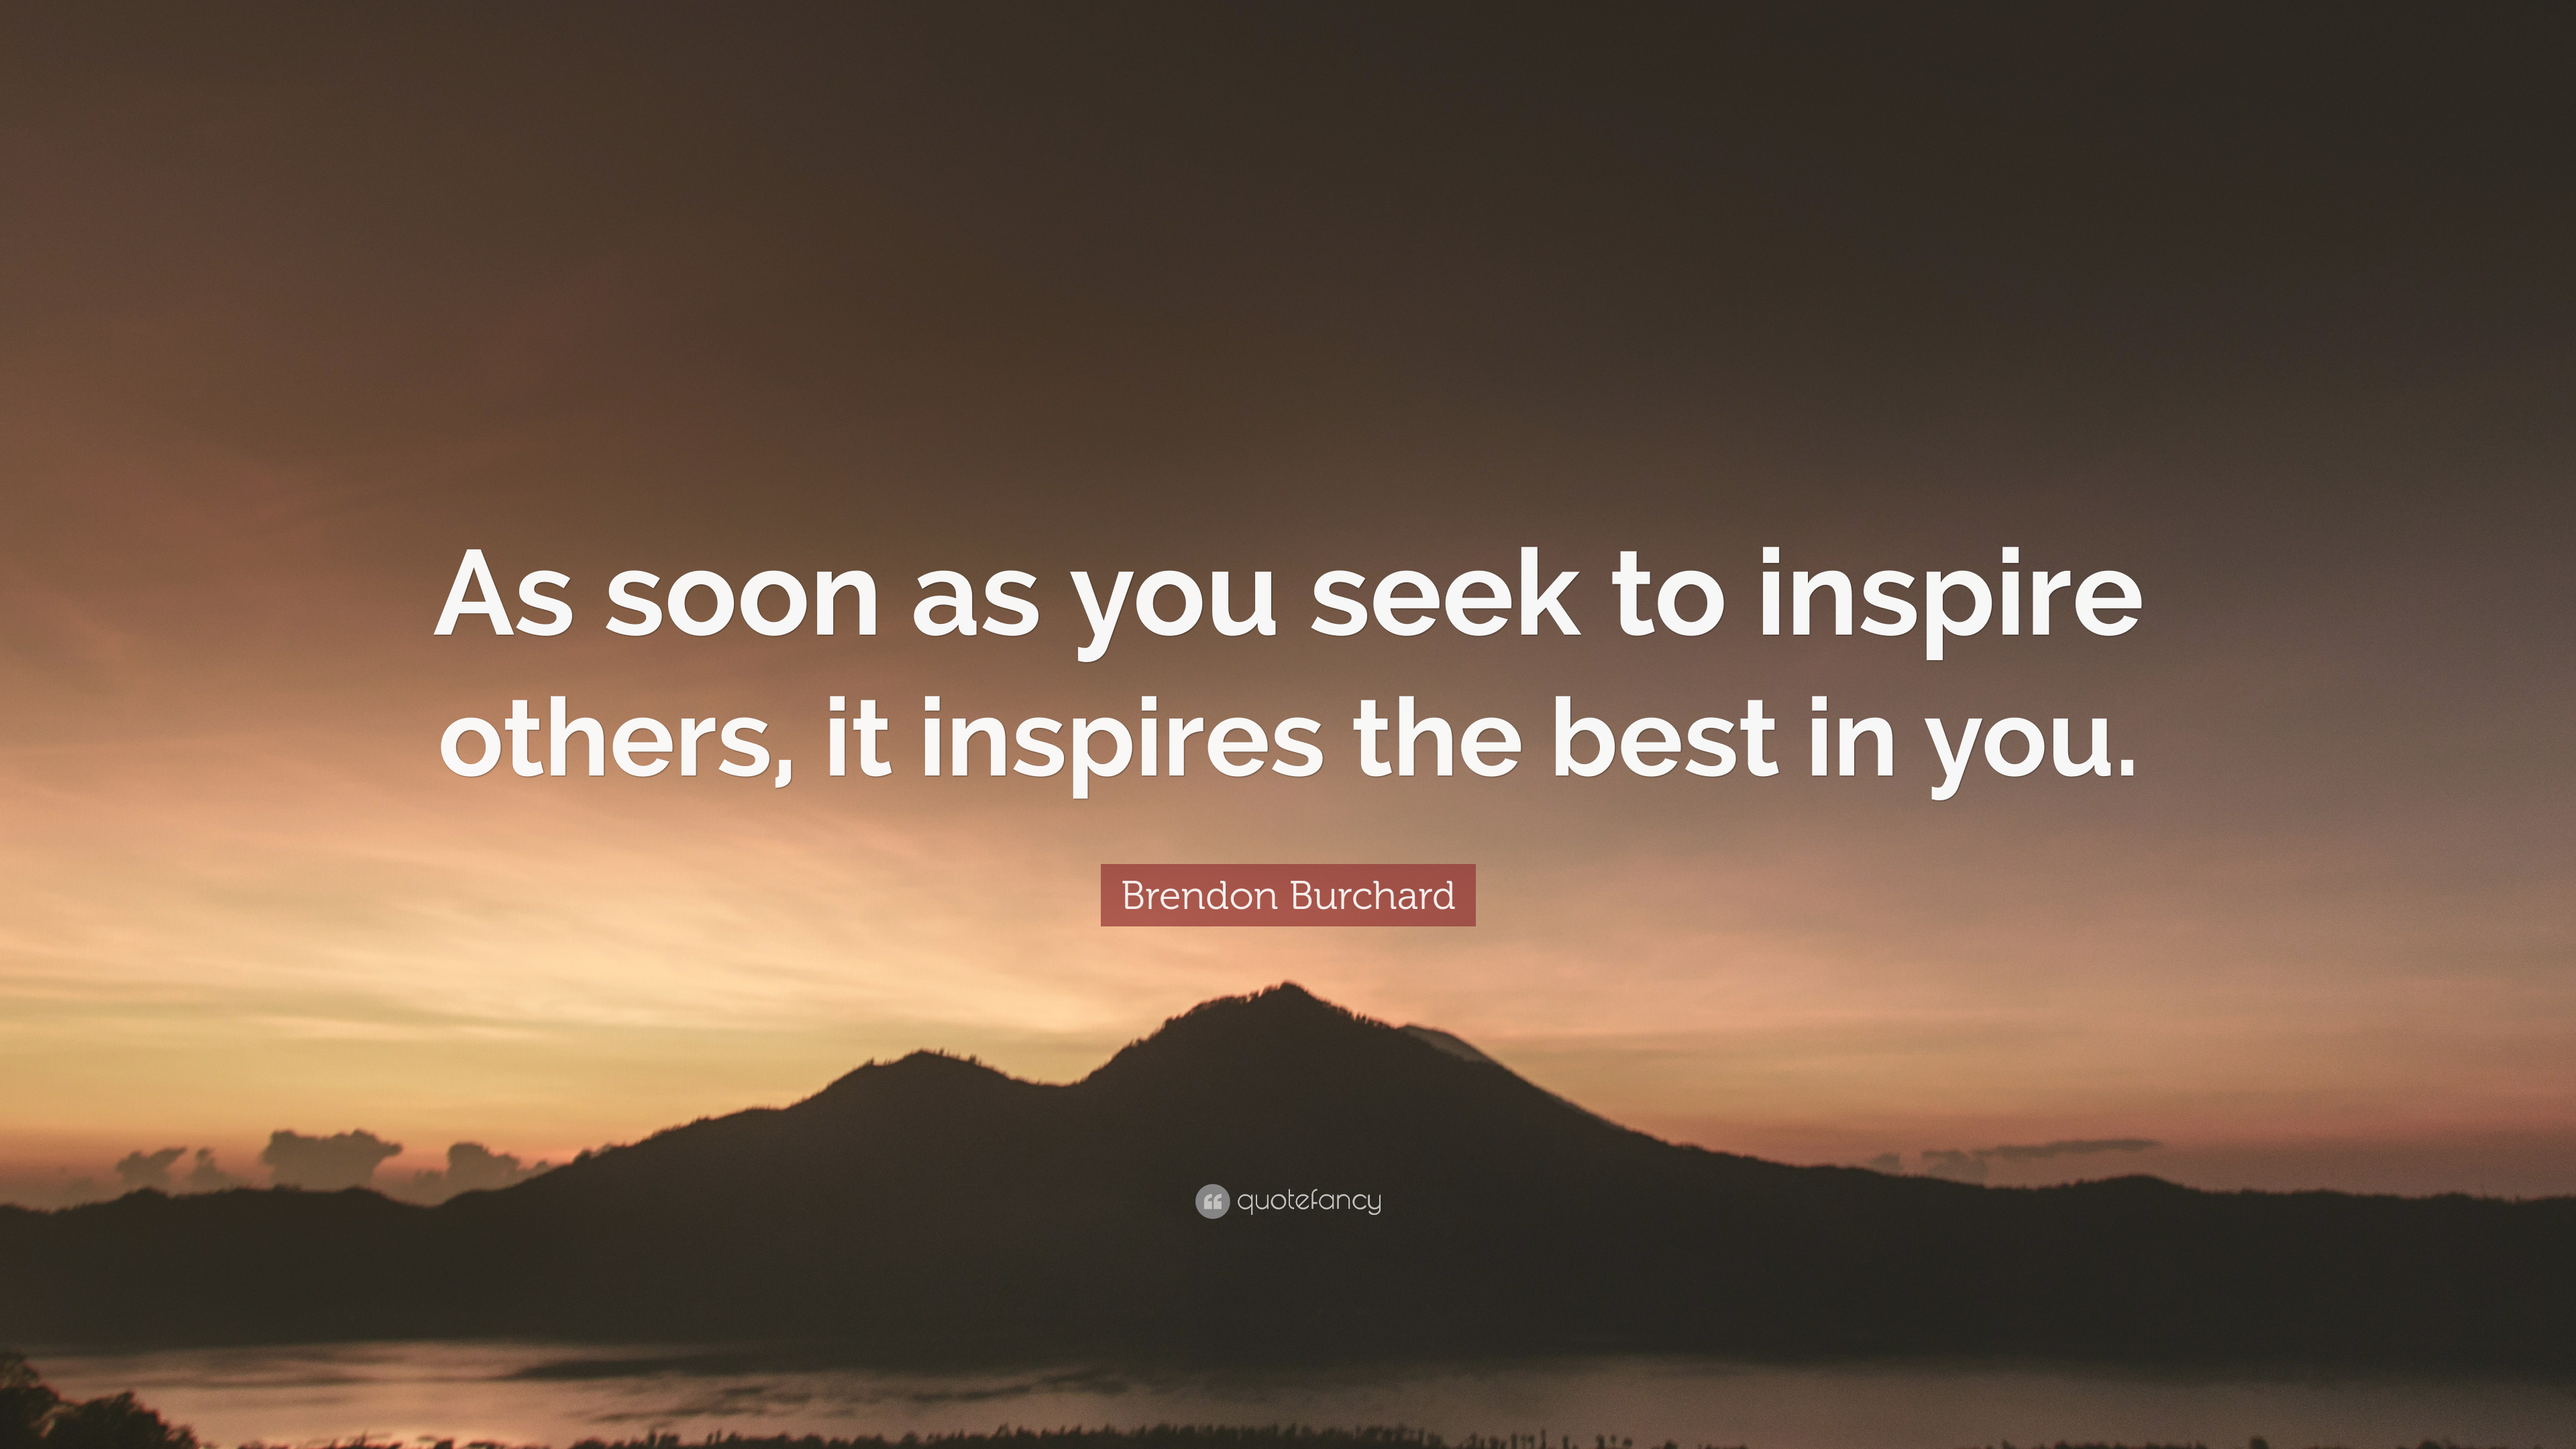 """Brendon Burchard Quote: """"As soon as you seek to inspire others, it inspires  the best in you."""" (7 wallpapers) - Quotefancy"""